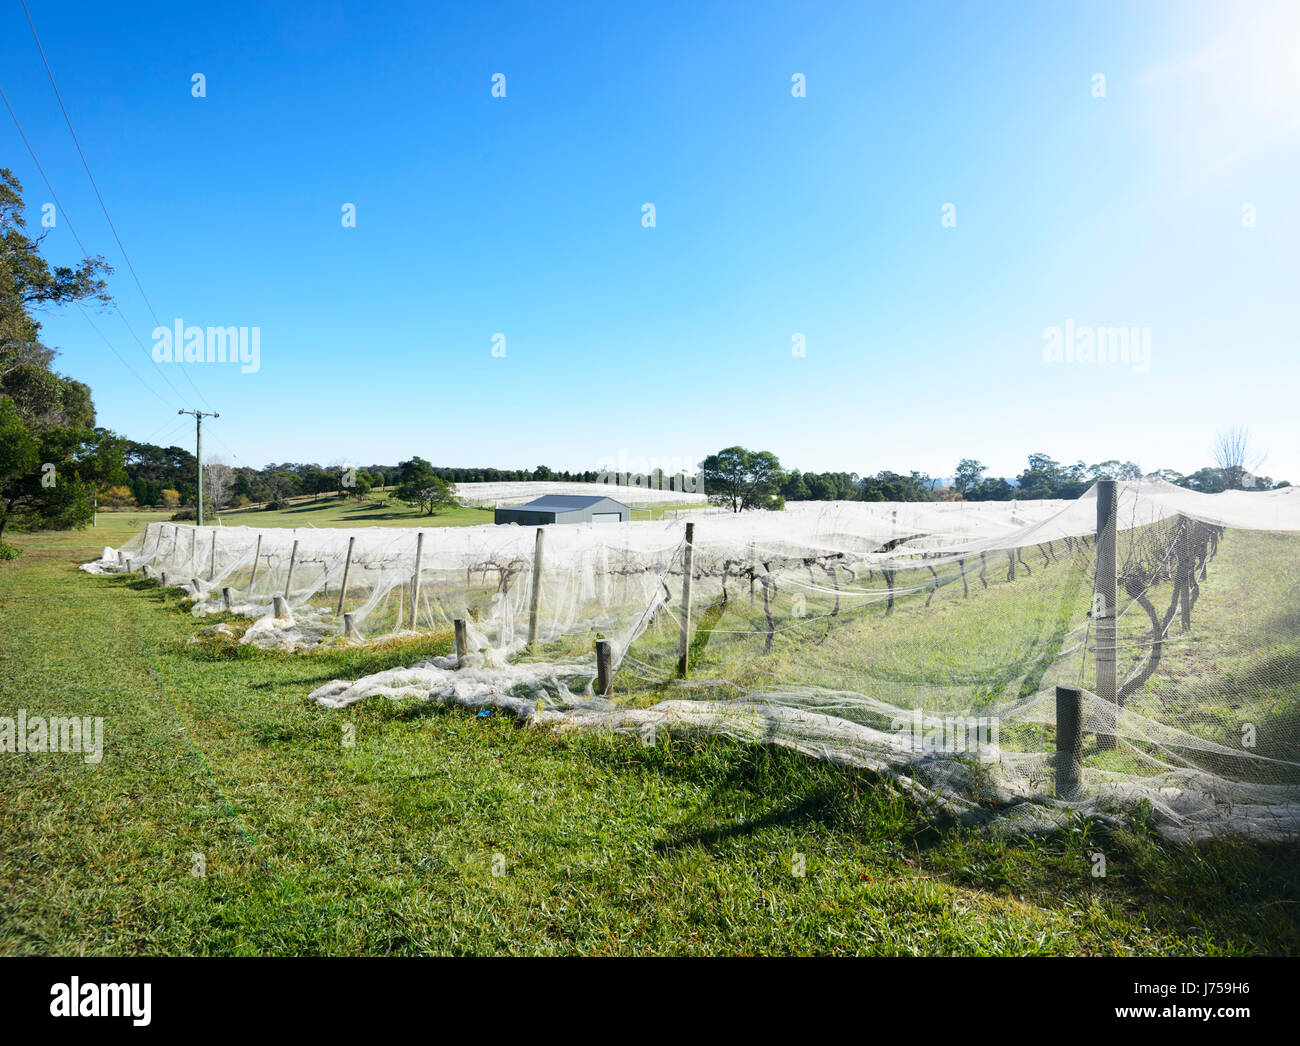 Vineyards of the Joadja Winery with protective nets, Southern Highlands, New South Wales, NSW, Australia - Stock Image